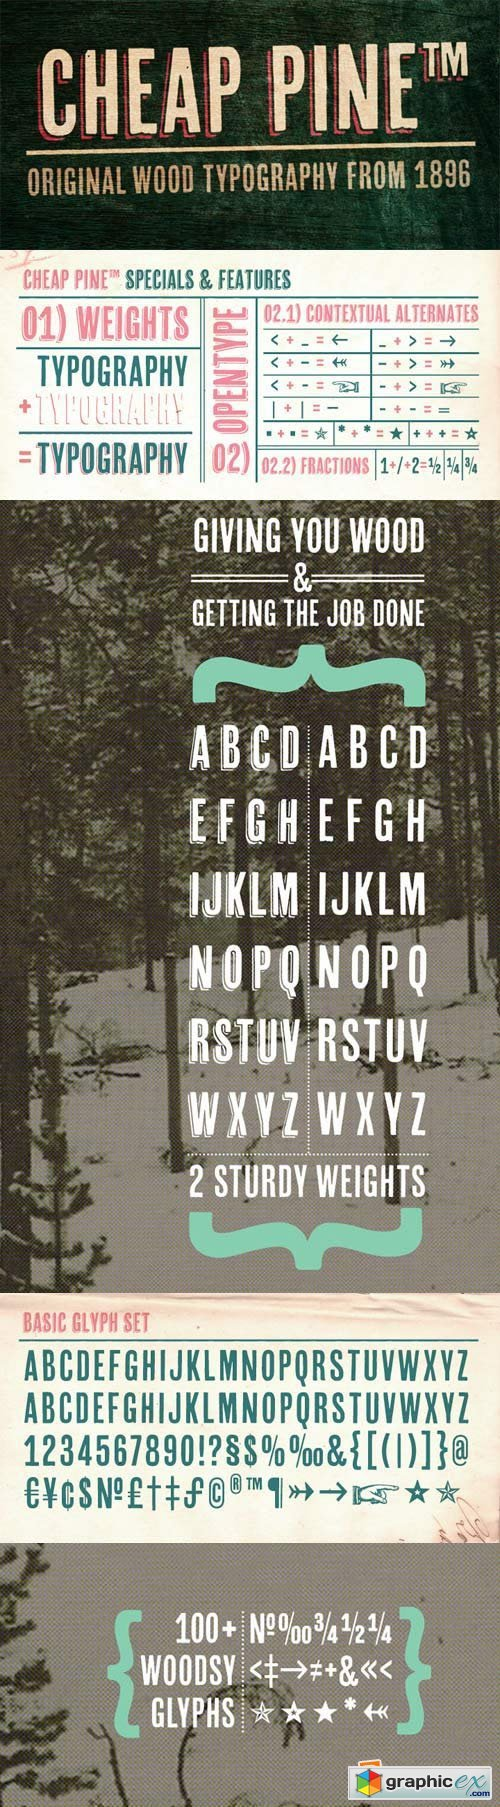 Cheap Pine Font Family - 3 Fonts » Free Download Vector Stock Image